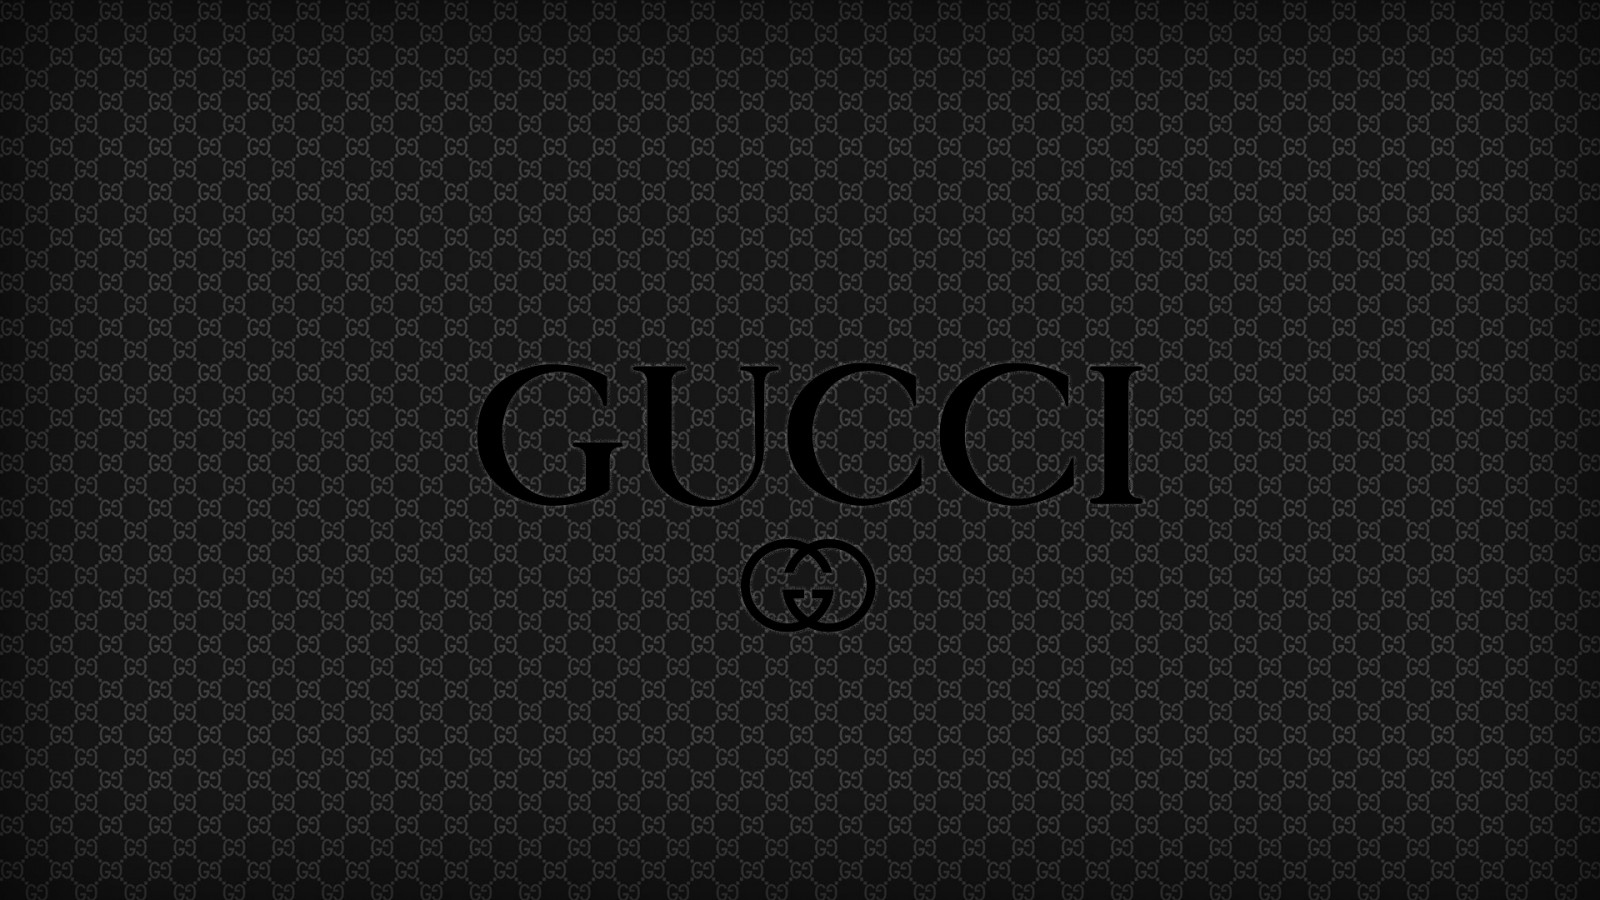 pin gucci brand logo background download cool hd